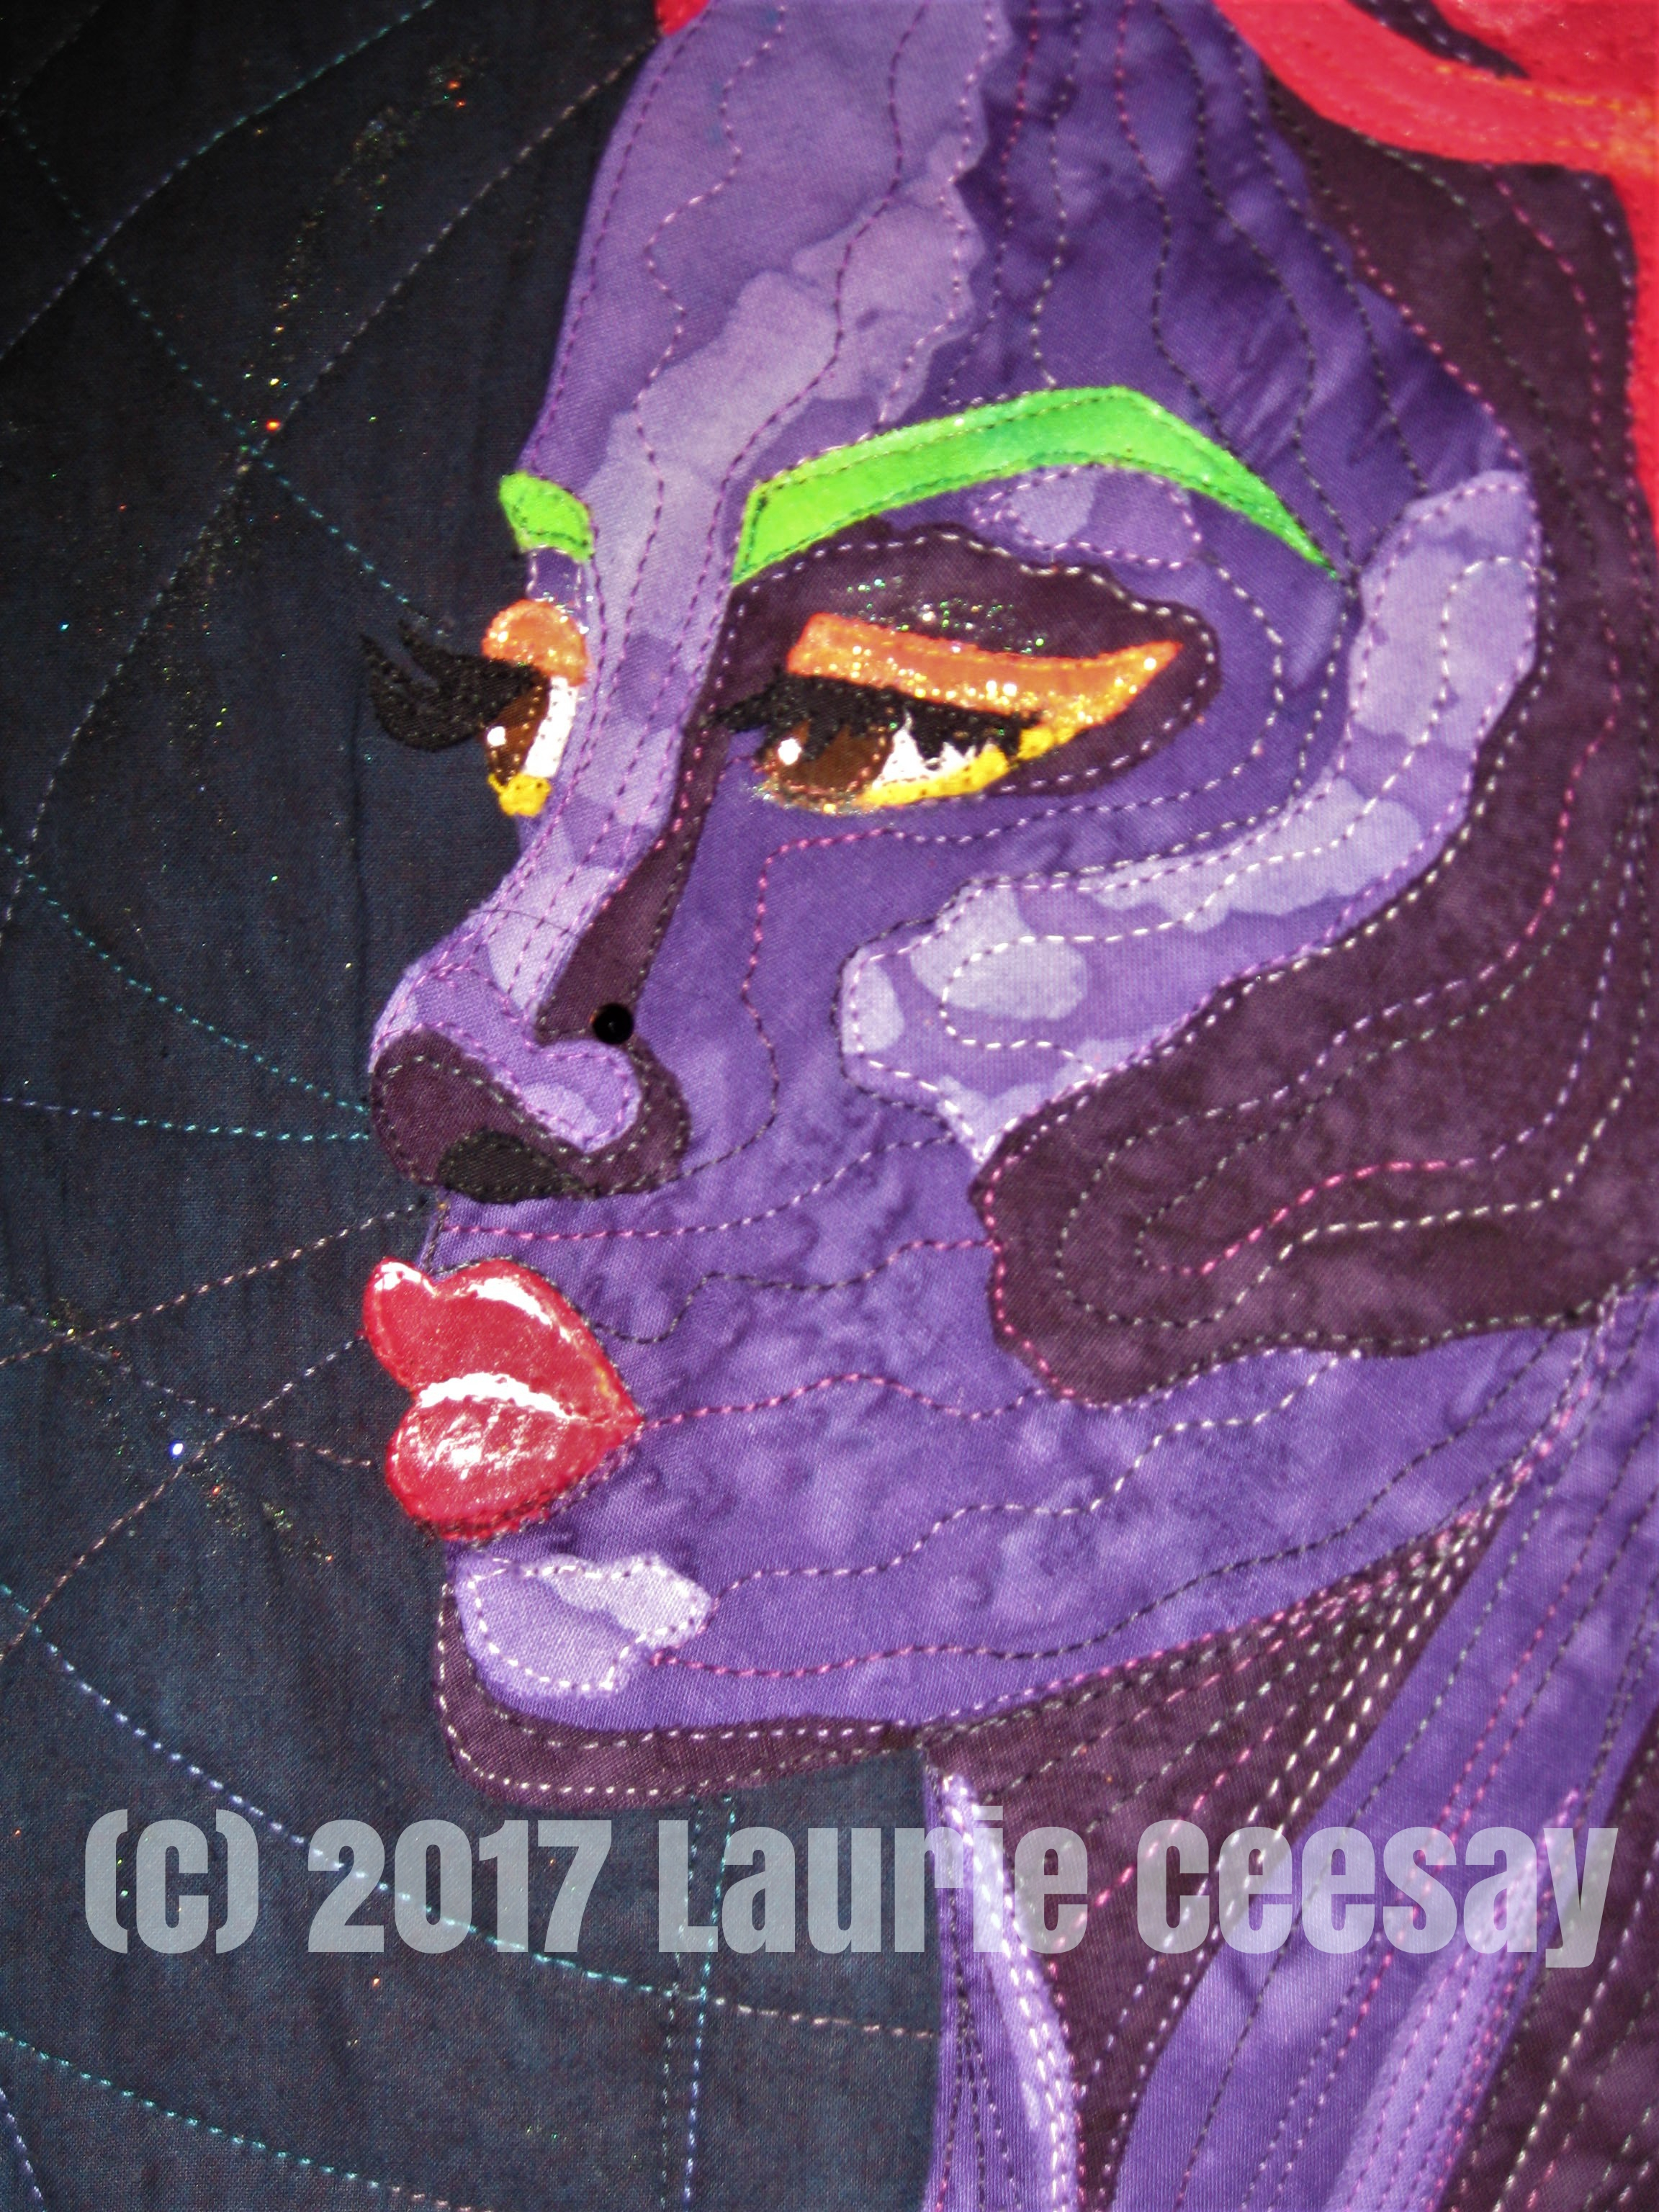 In the close up of the face I added neon loose glitter as eyeliner and a dab of purple glitter poster paint from The Dollar Tree on the eyelids. I used white fabric paint to define the mouth. it is not noticeable in this photo but I used three dark purple beans/sequins for a low contrast color earring and a dark purple rhinestone for a nose piercing. I used some blue glitter nail polish on a small scale to highlight the dark blue background. I quilted large swirly circles which happened thanks to my kitchen! I pulled a large round pizza pan, a large Tupperware lid and a dinner plate to mark the circles! One has to be creative!!